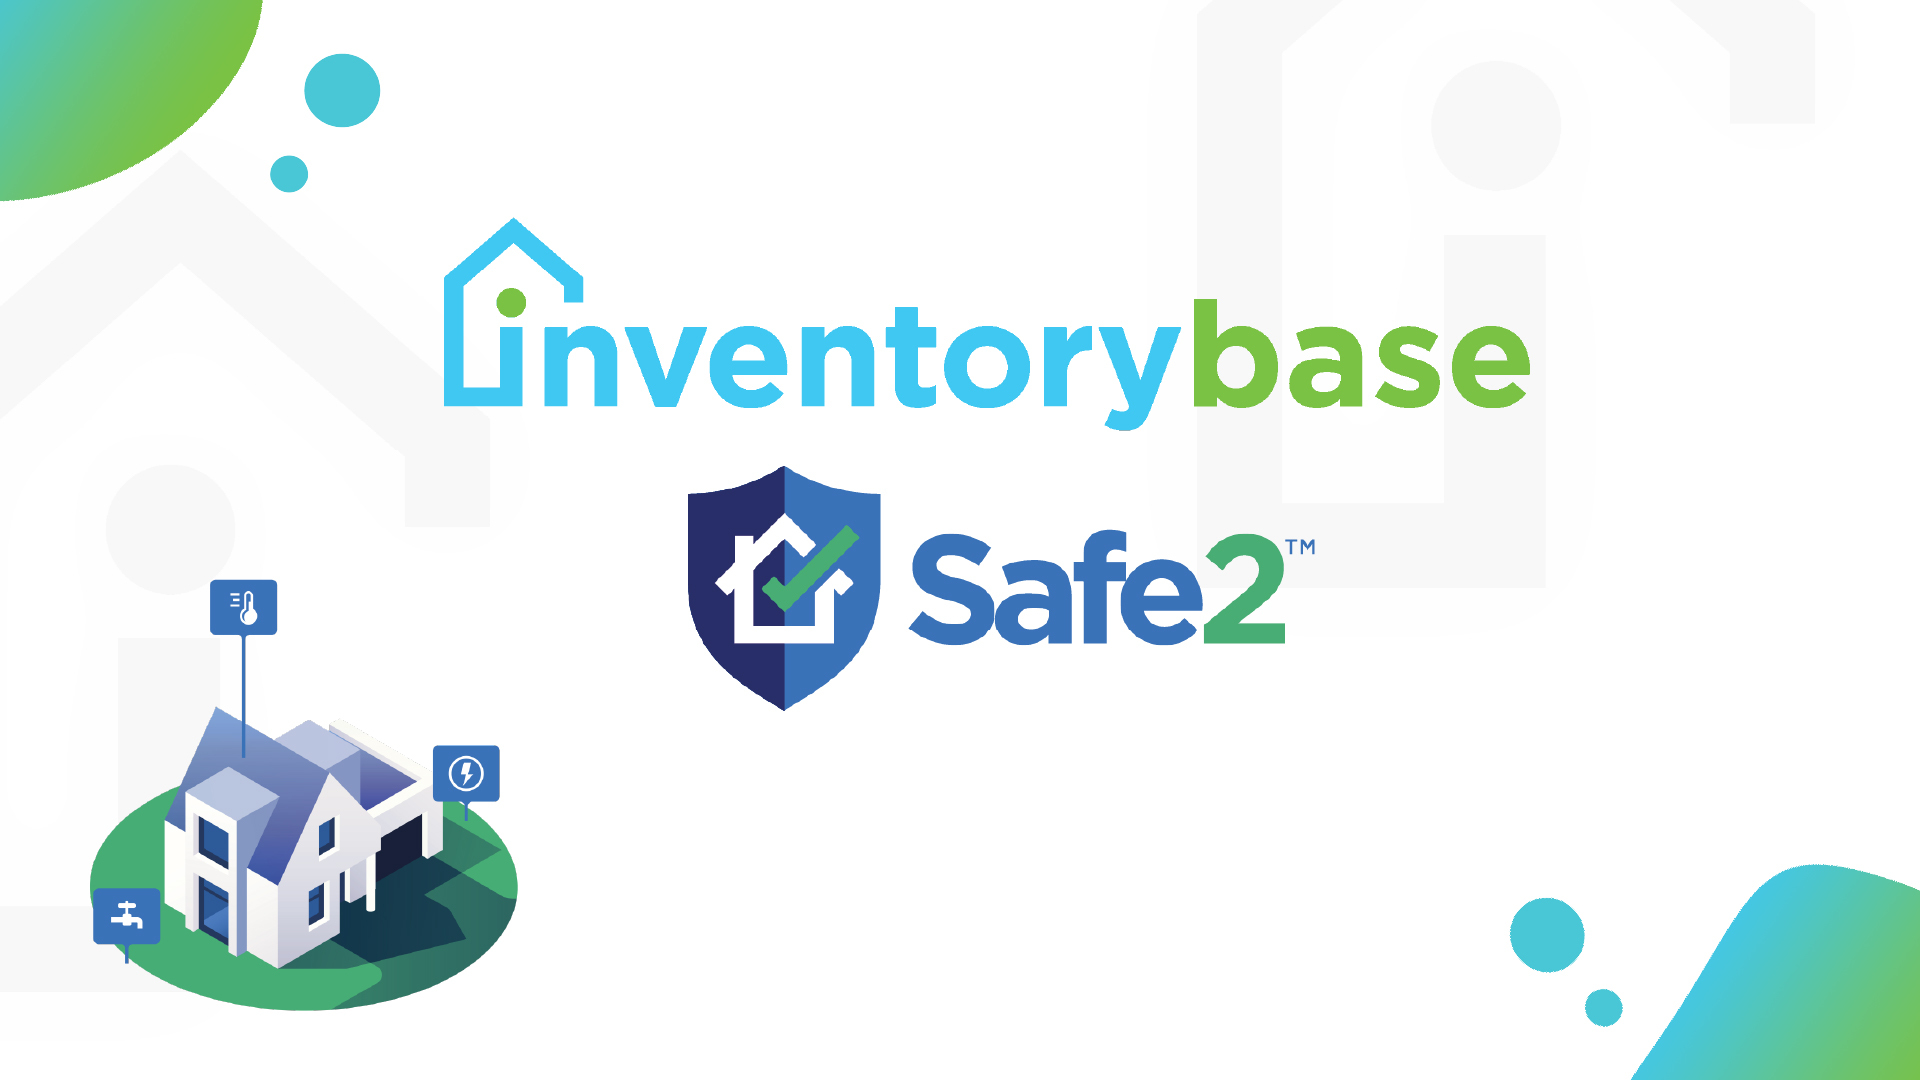 InventoryBase announces partnership with Safe2